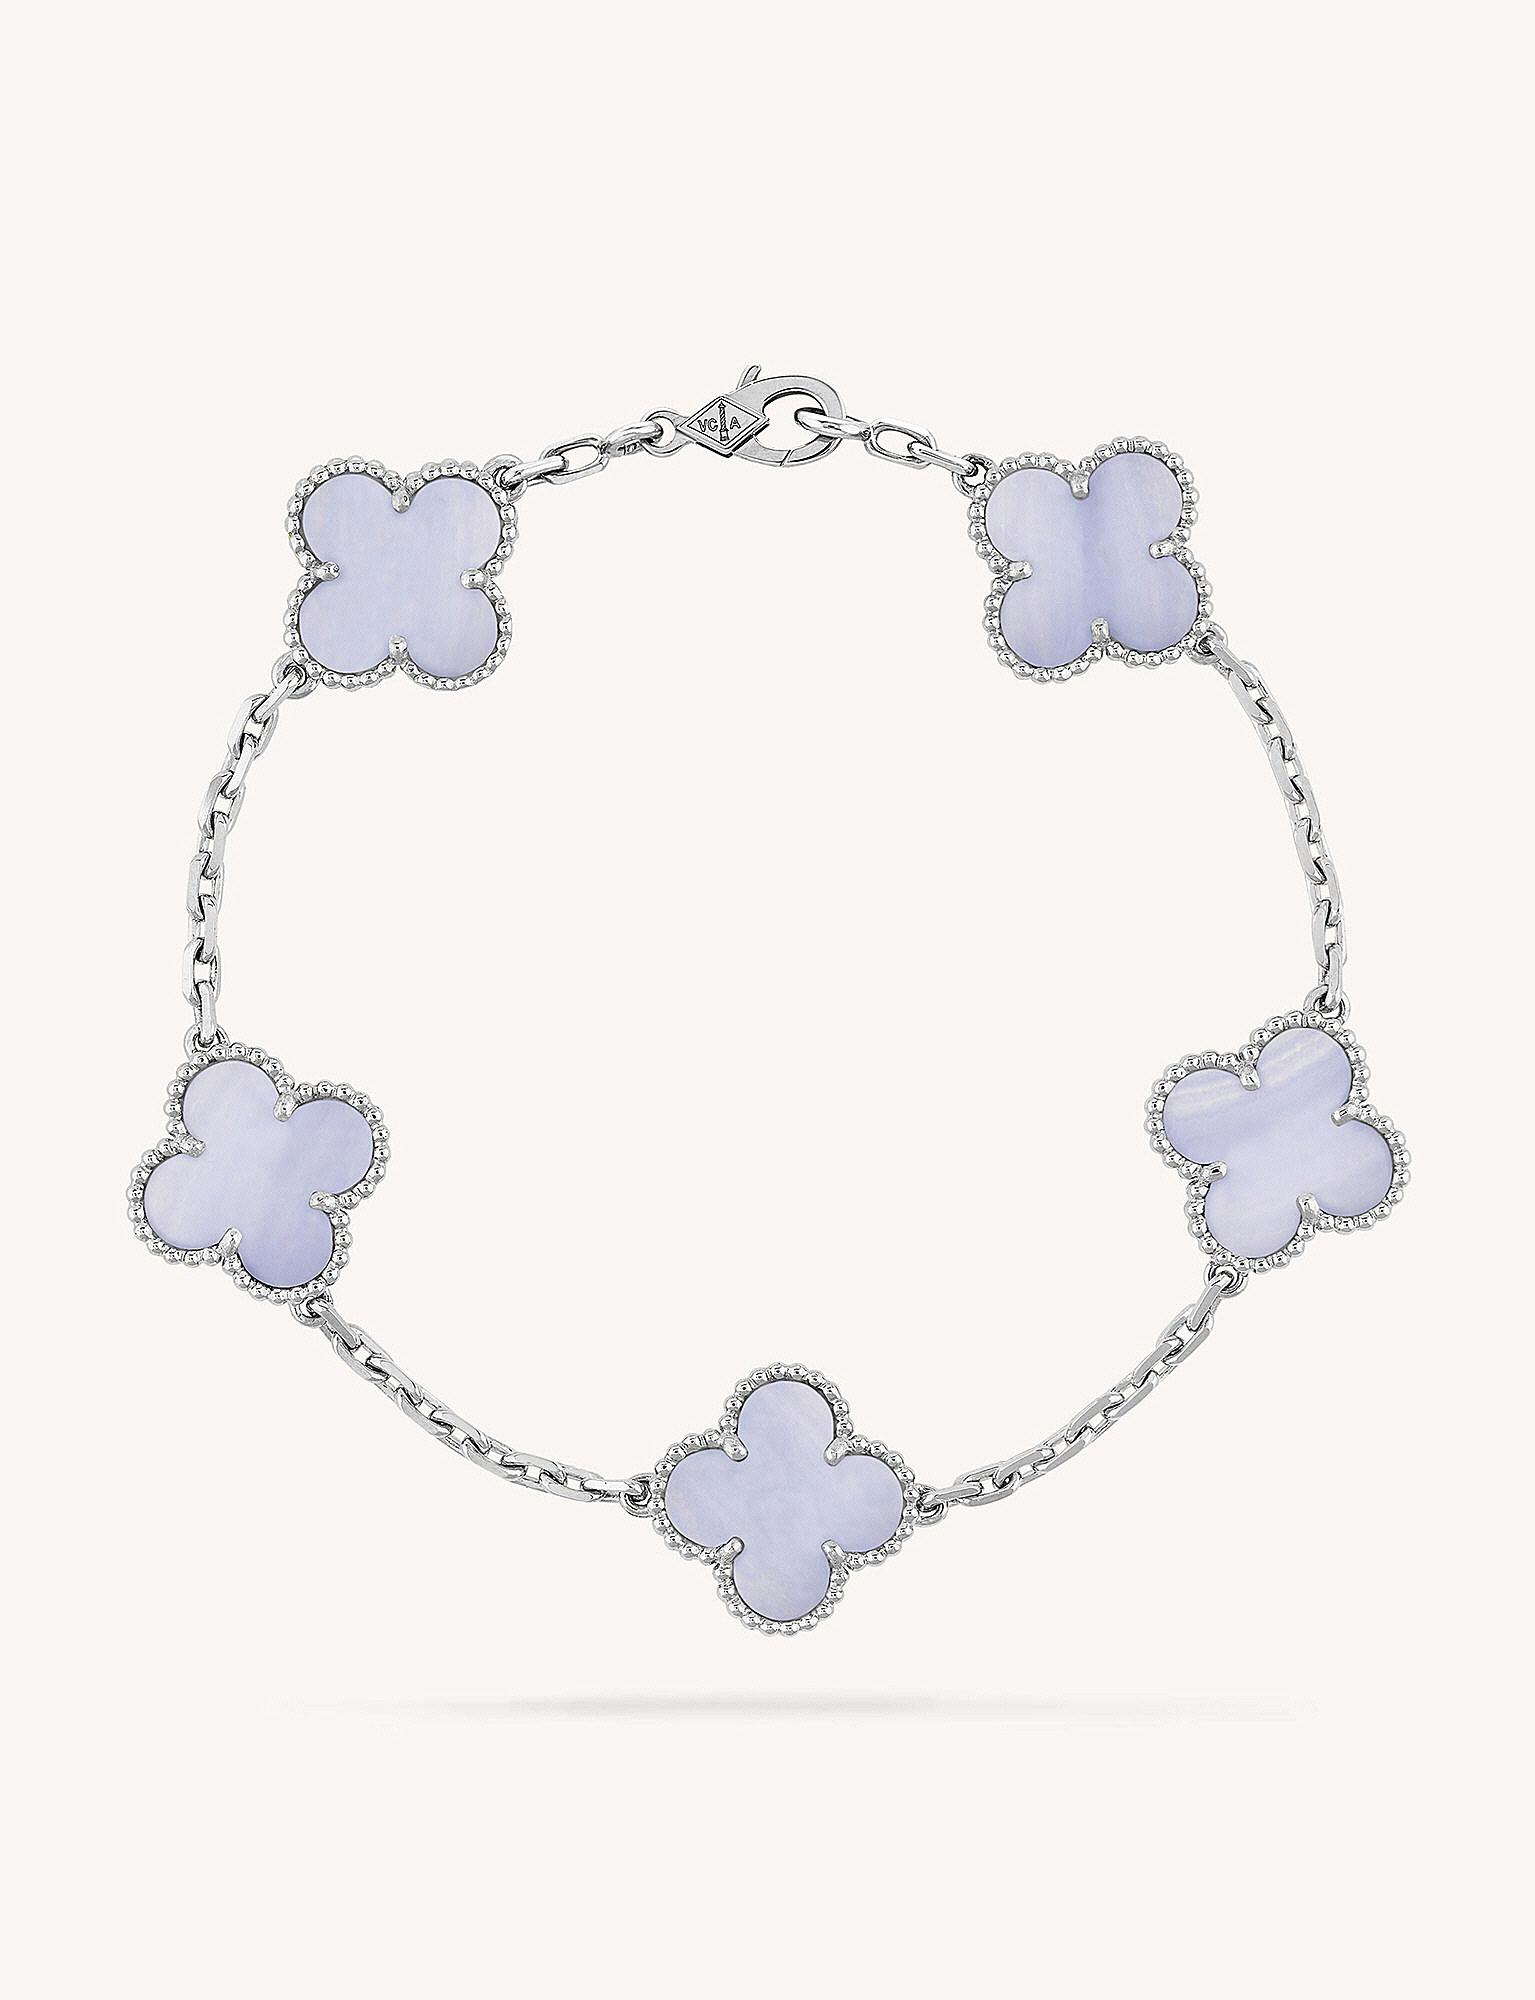 a8cb019f778fa Van Cleef   Arpels Vintage Alhambra Gold And Chalcedony Bracelet in ...